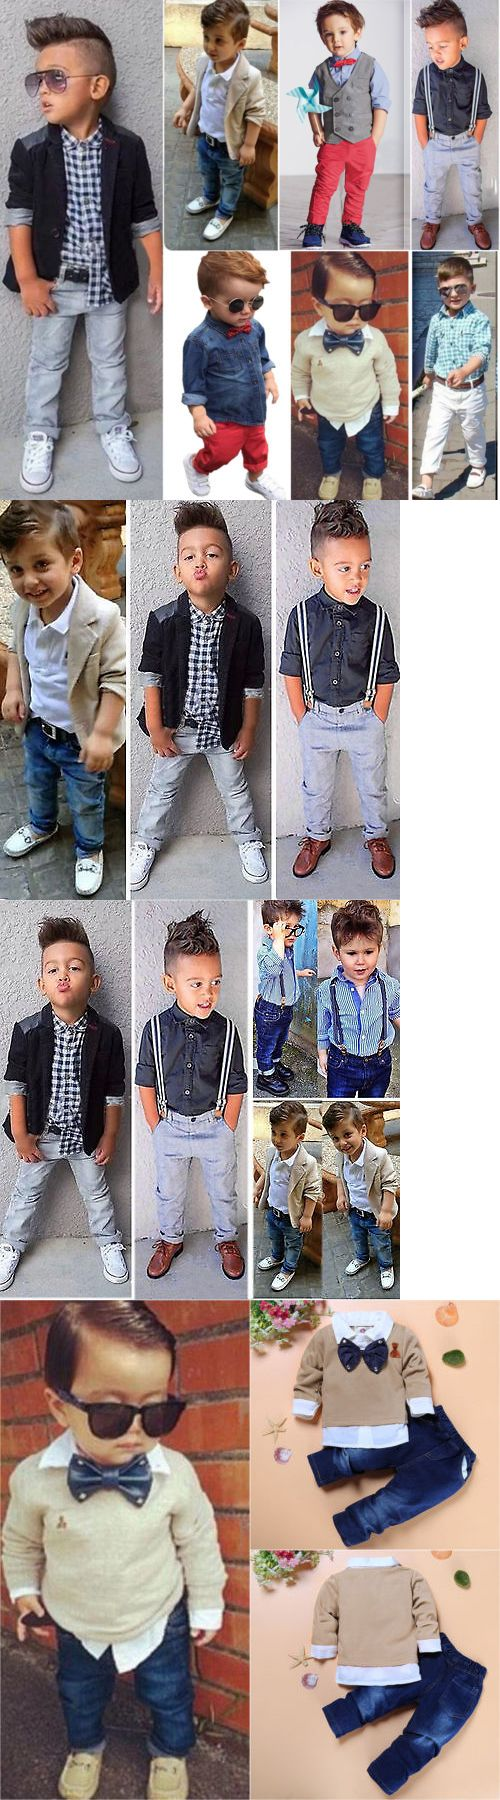 a1f00d78a3ea Boys Clothing Sizes 4 and Up 11452  Toddler Kids Baby Boys Shirt ...